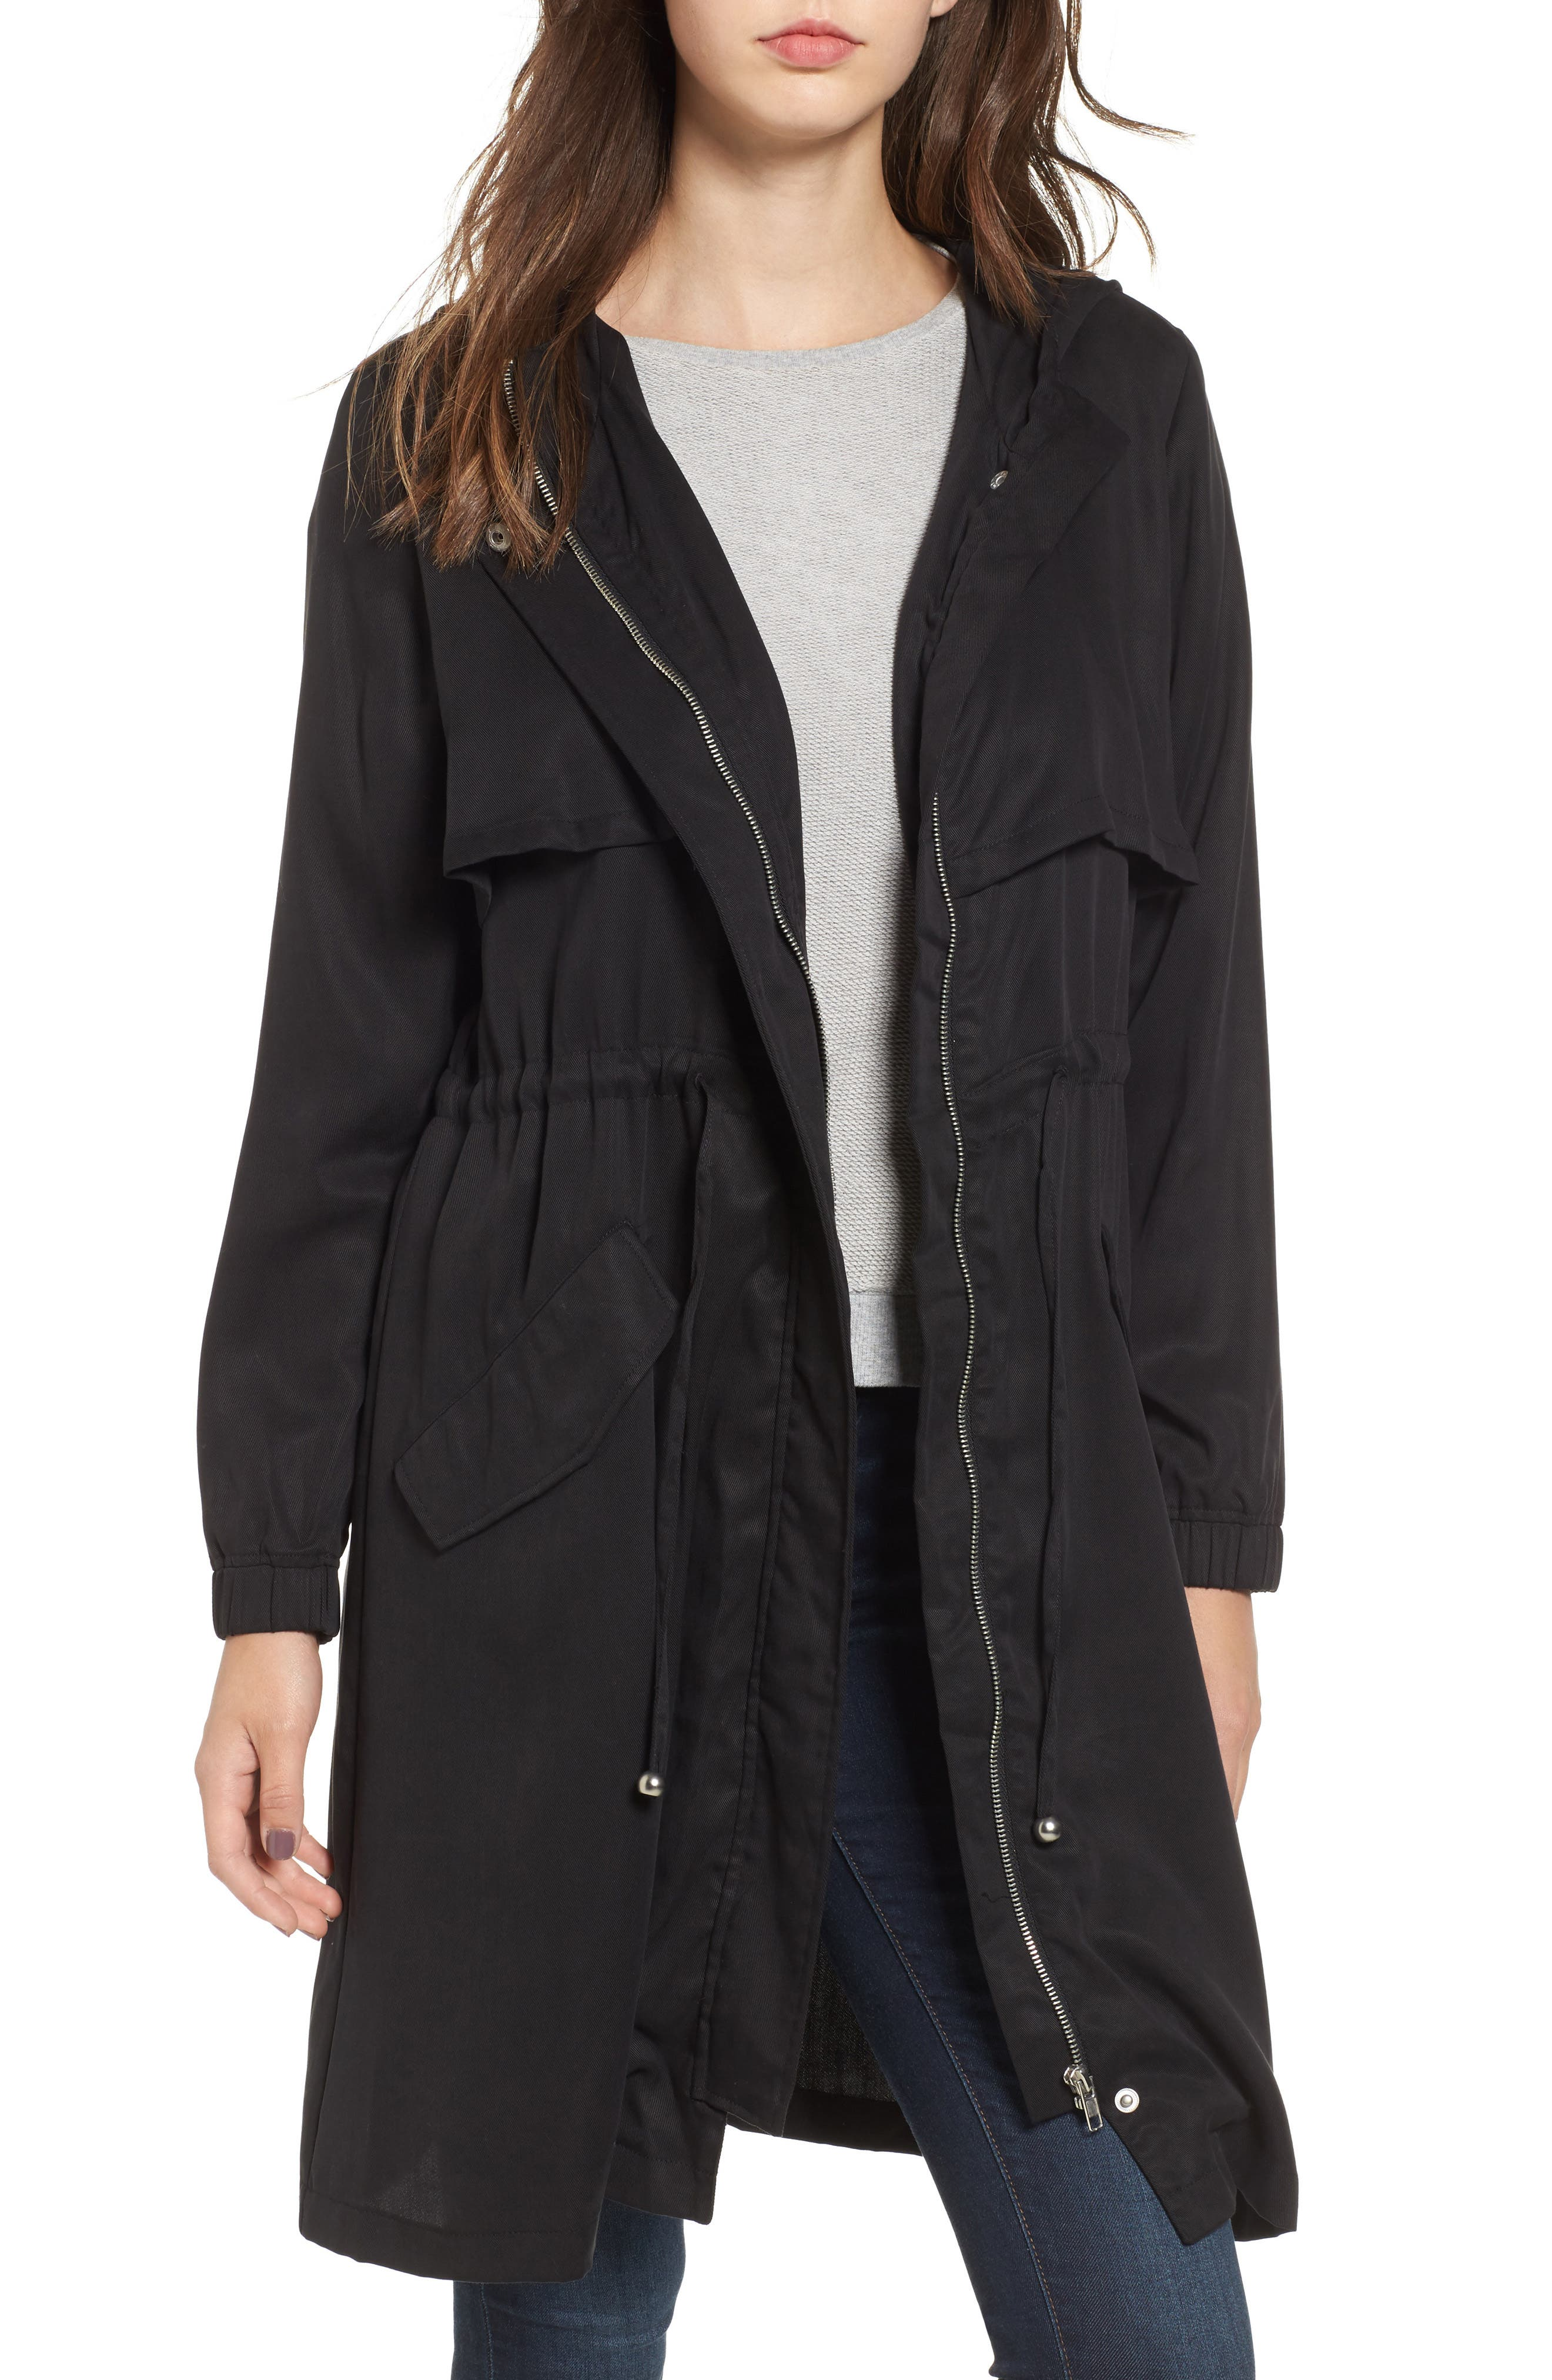 Tyler Hooded Trench Coat,                             Main thumbnail 1, color,                             Black